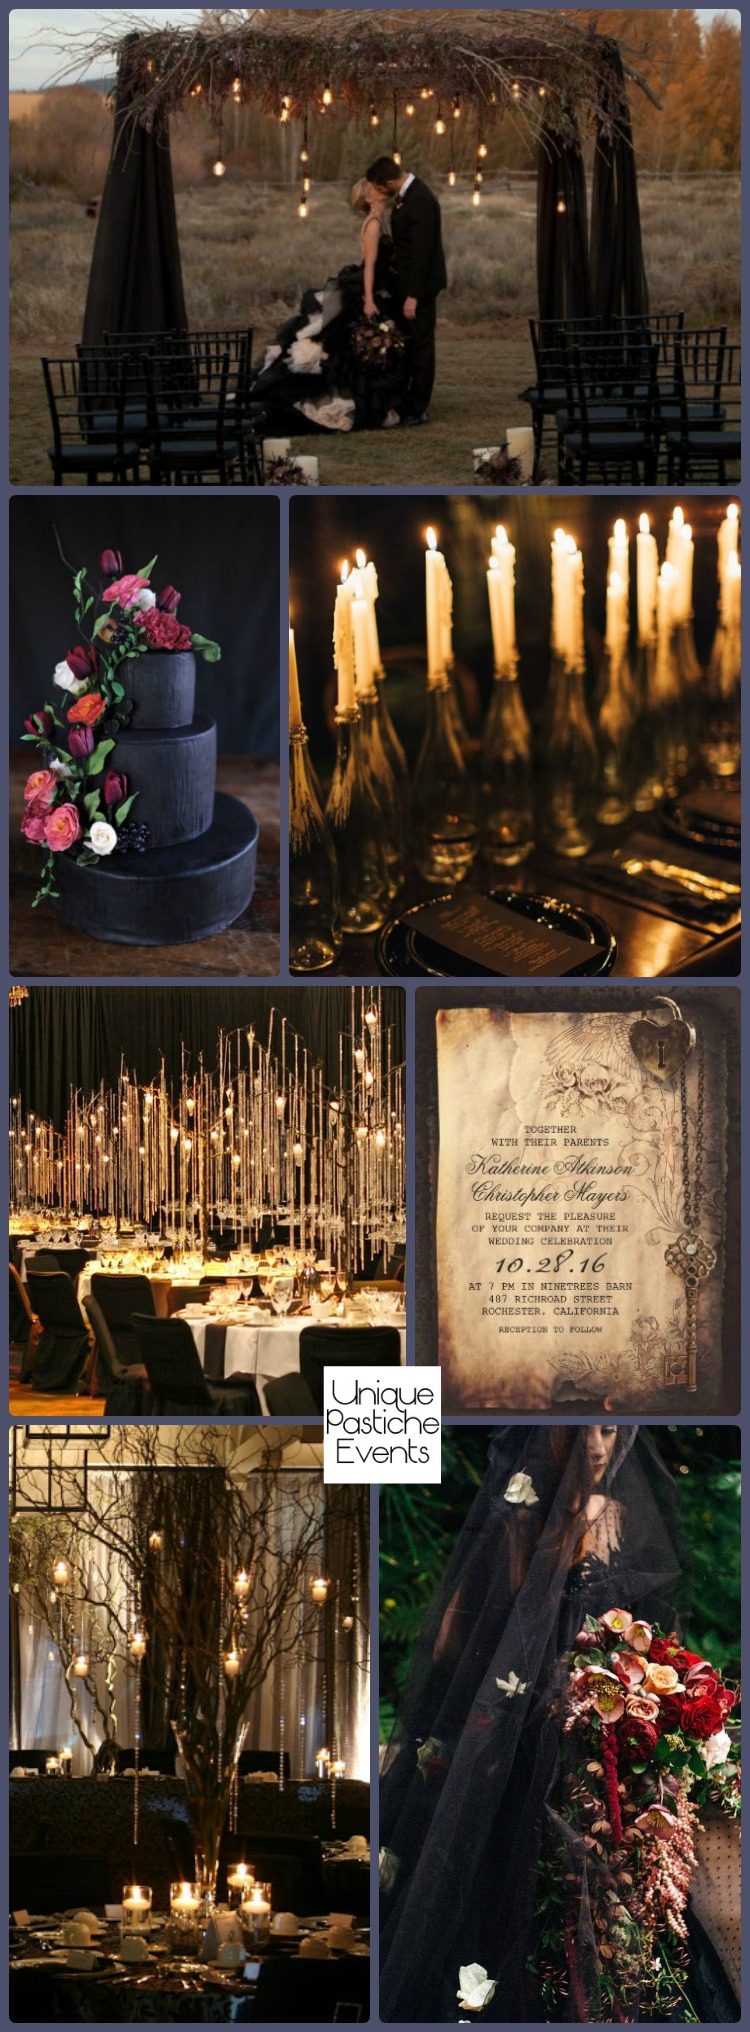 Rustic Goth Wedding by Candlelight – Halloween Wedding Ideas #Bruiloft #Candlelight #Goth #Halloween